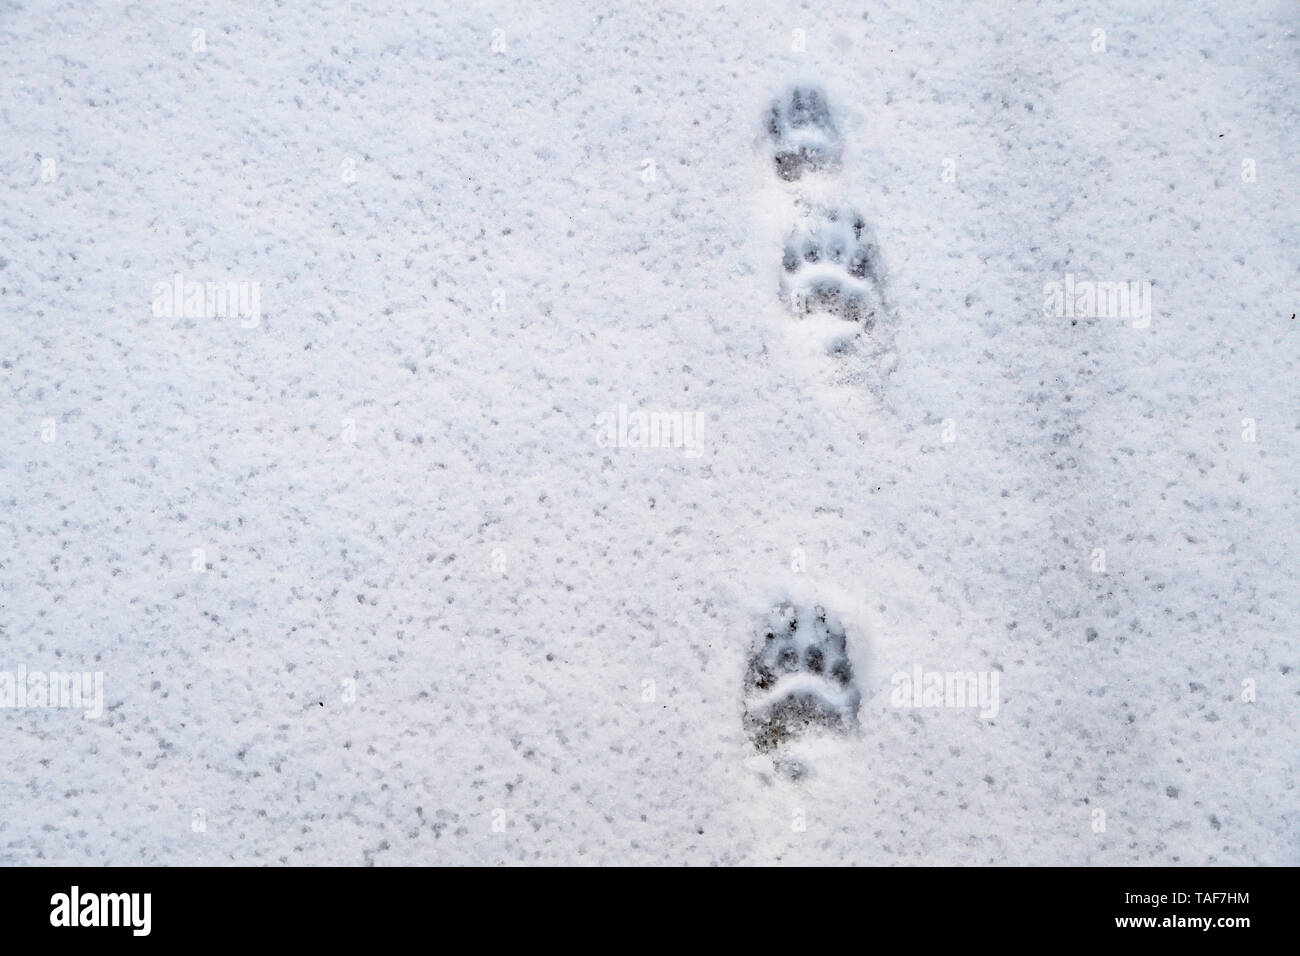 Badger's prints in the snow, Vosges, France - Stock Image